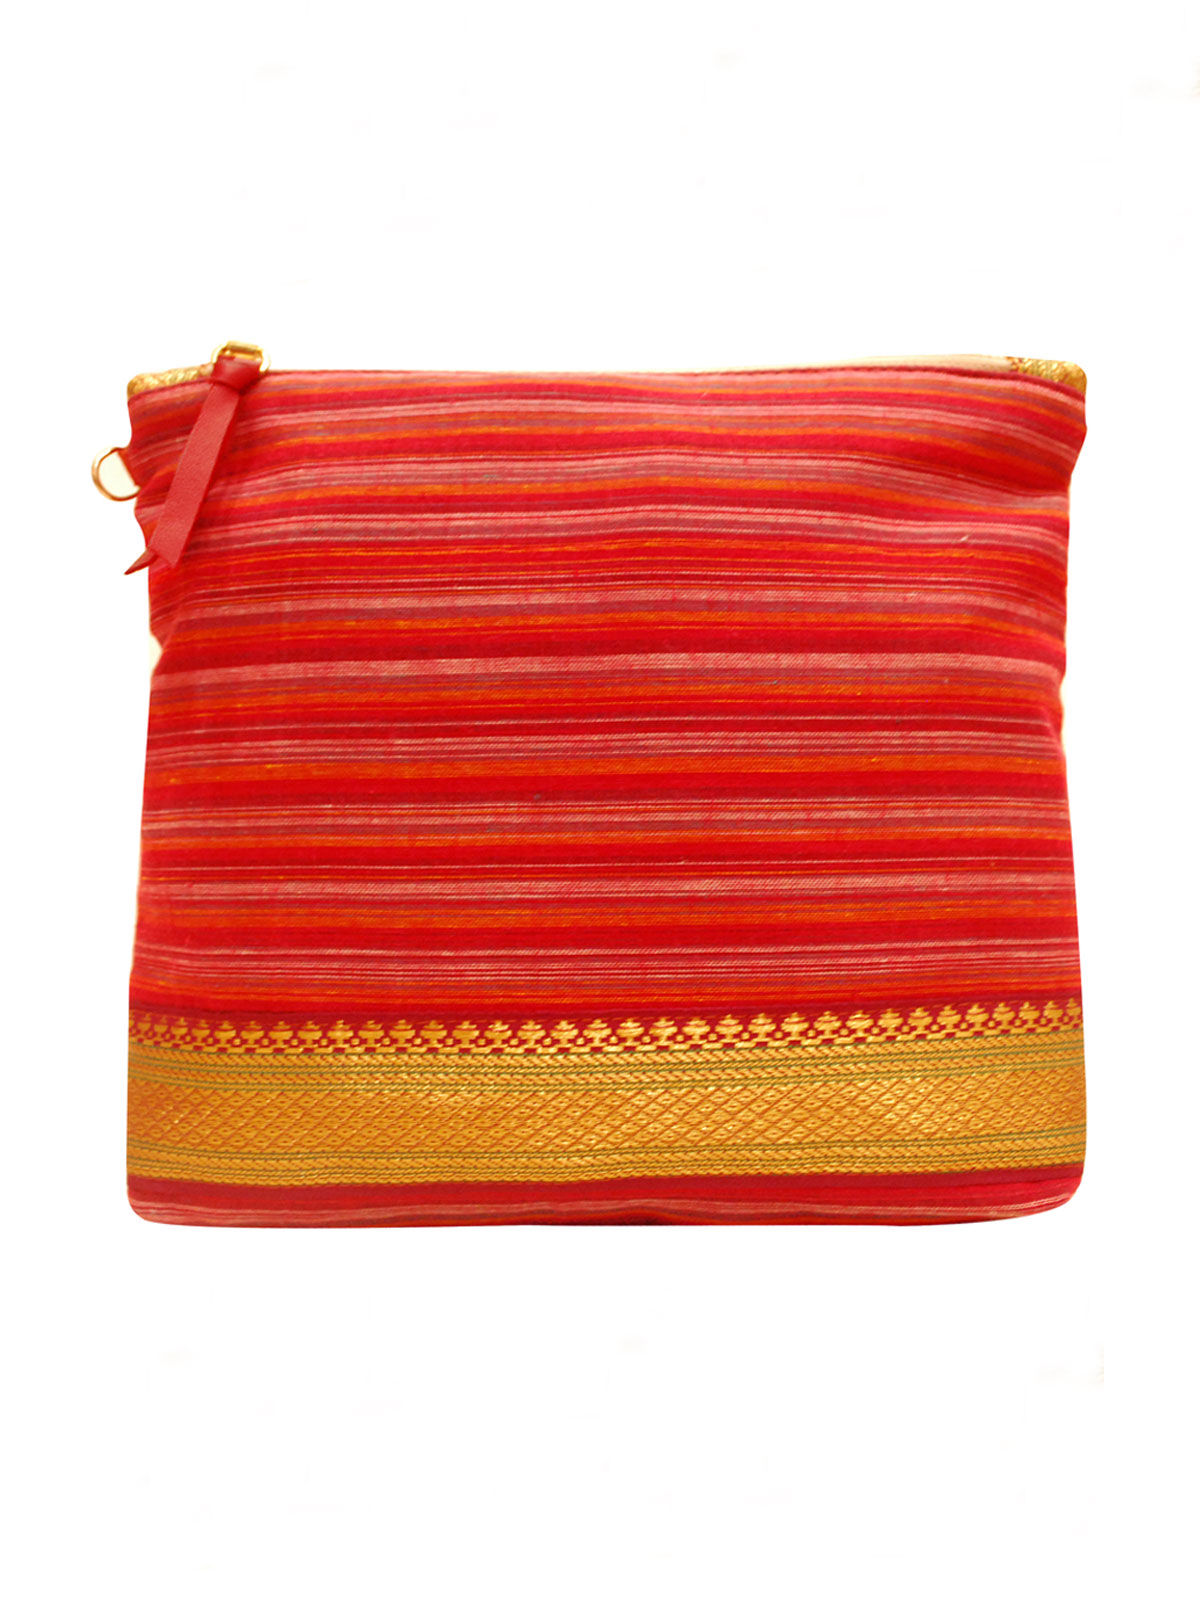 Handcrafted Pouch